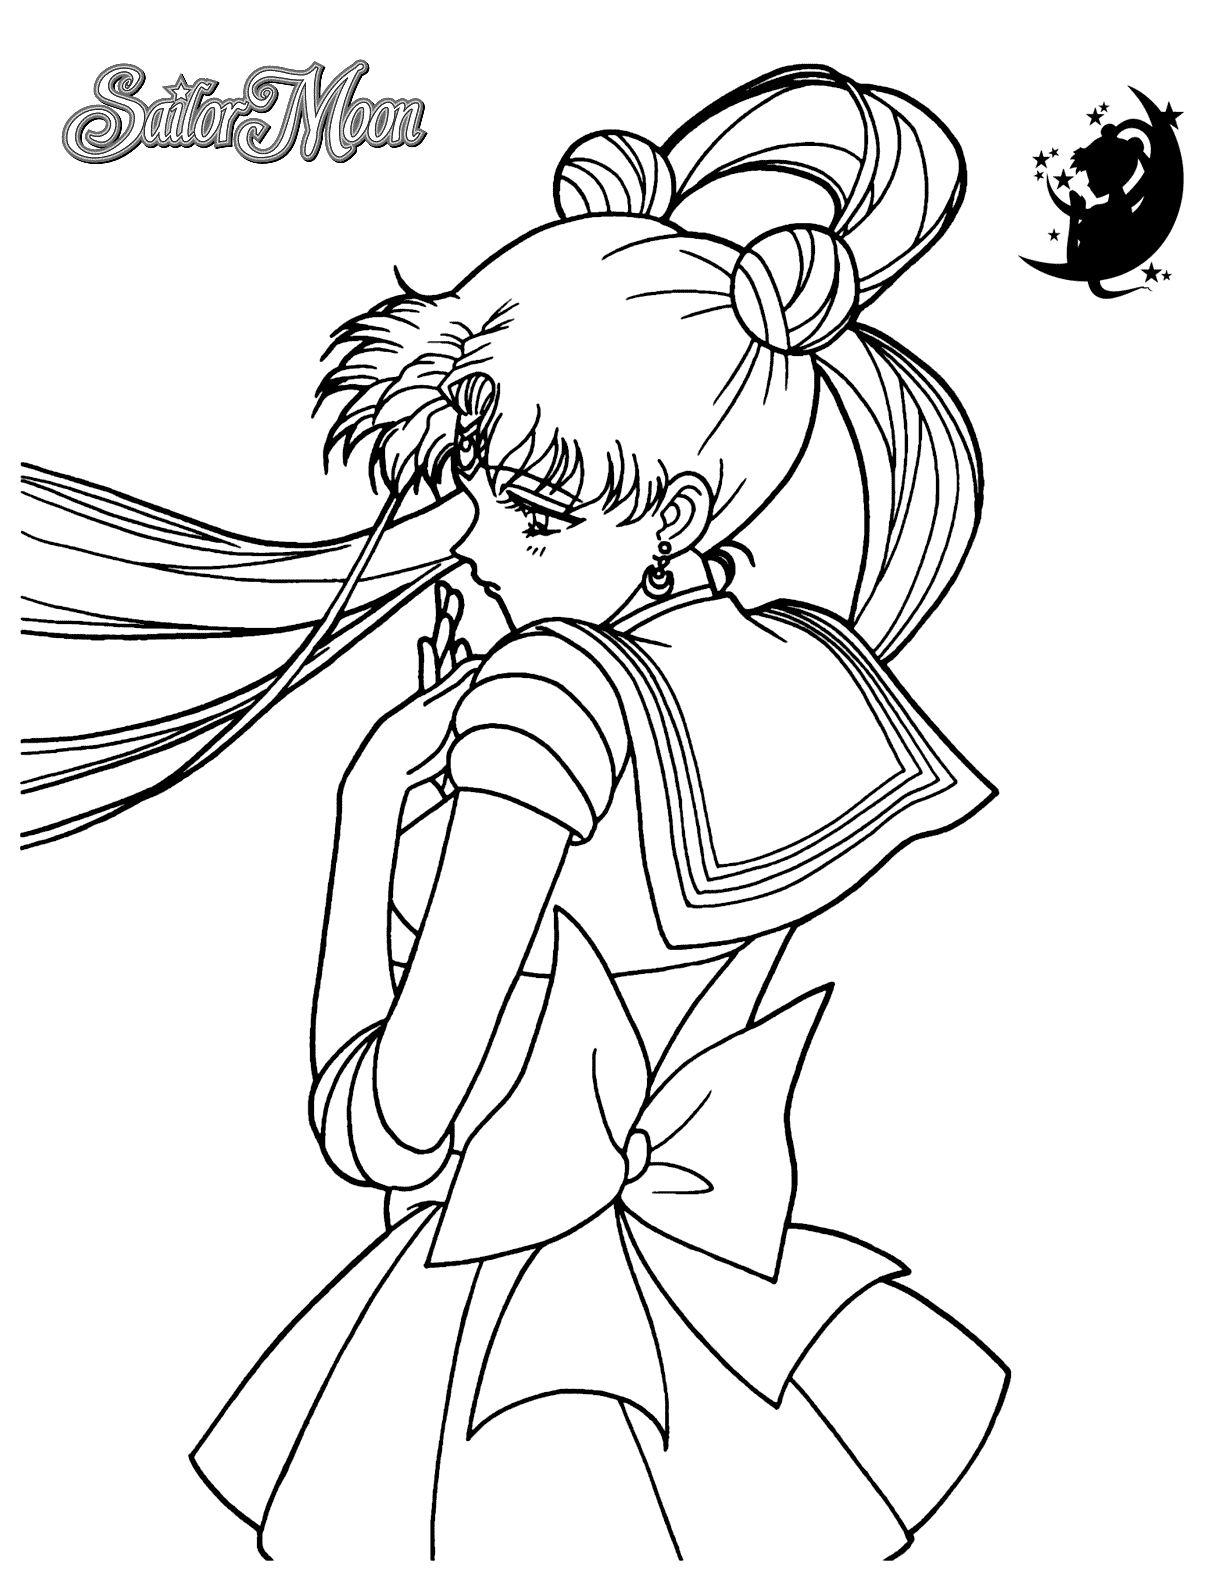 Sailor moon anime coloring pages for kids, printable free | 1584x1224